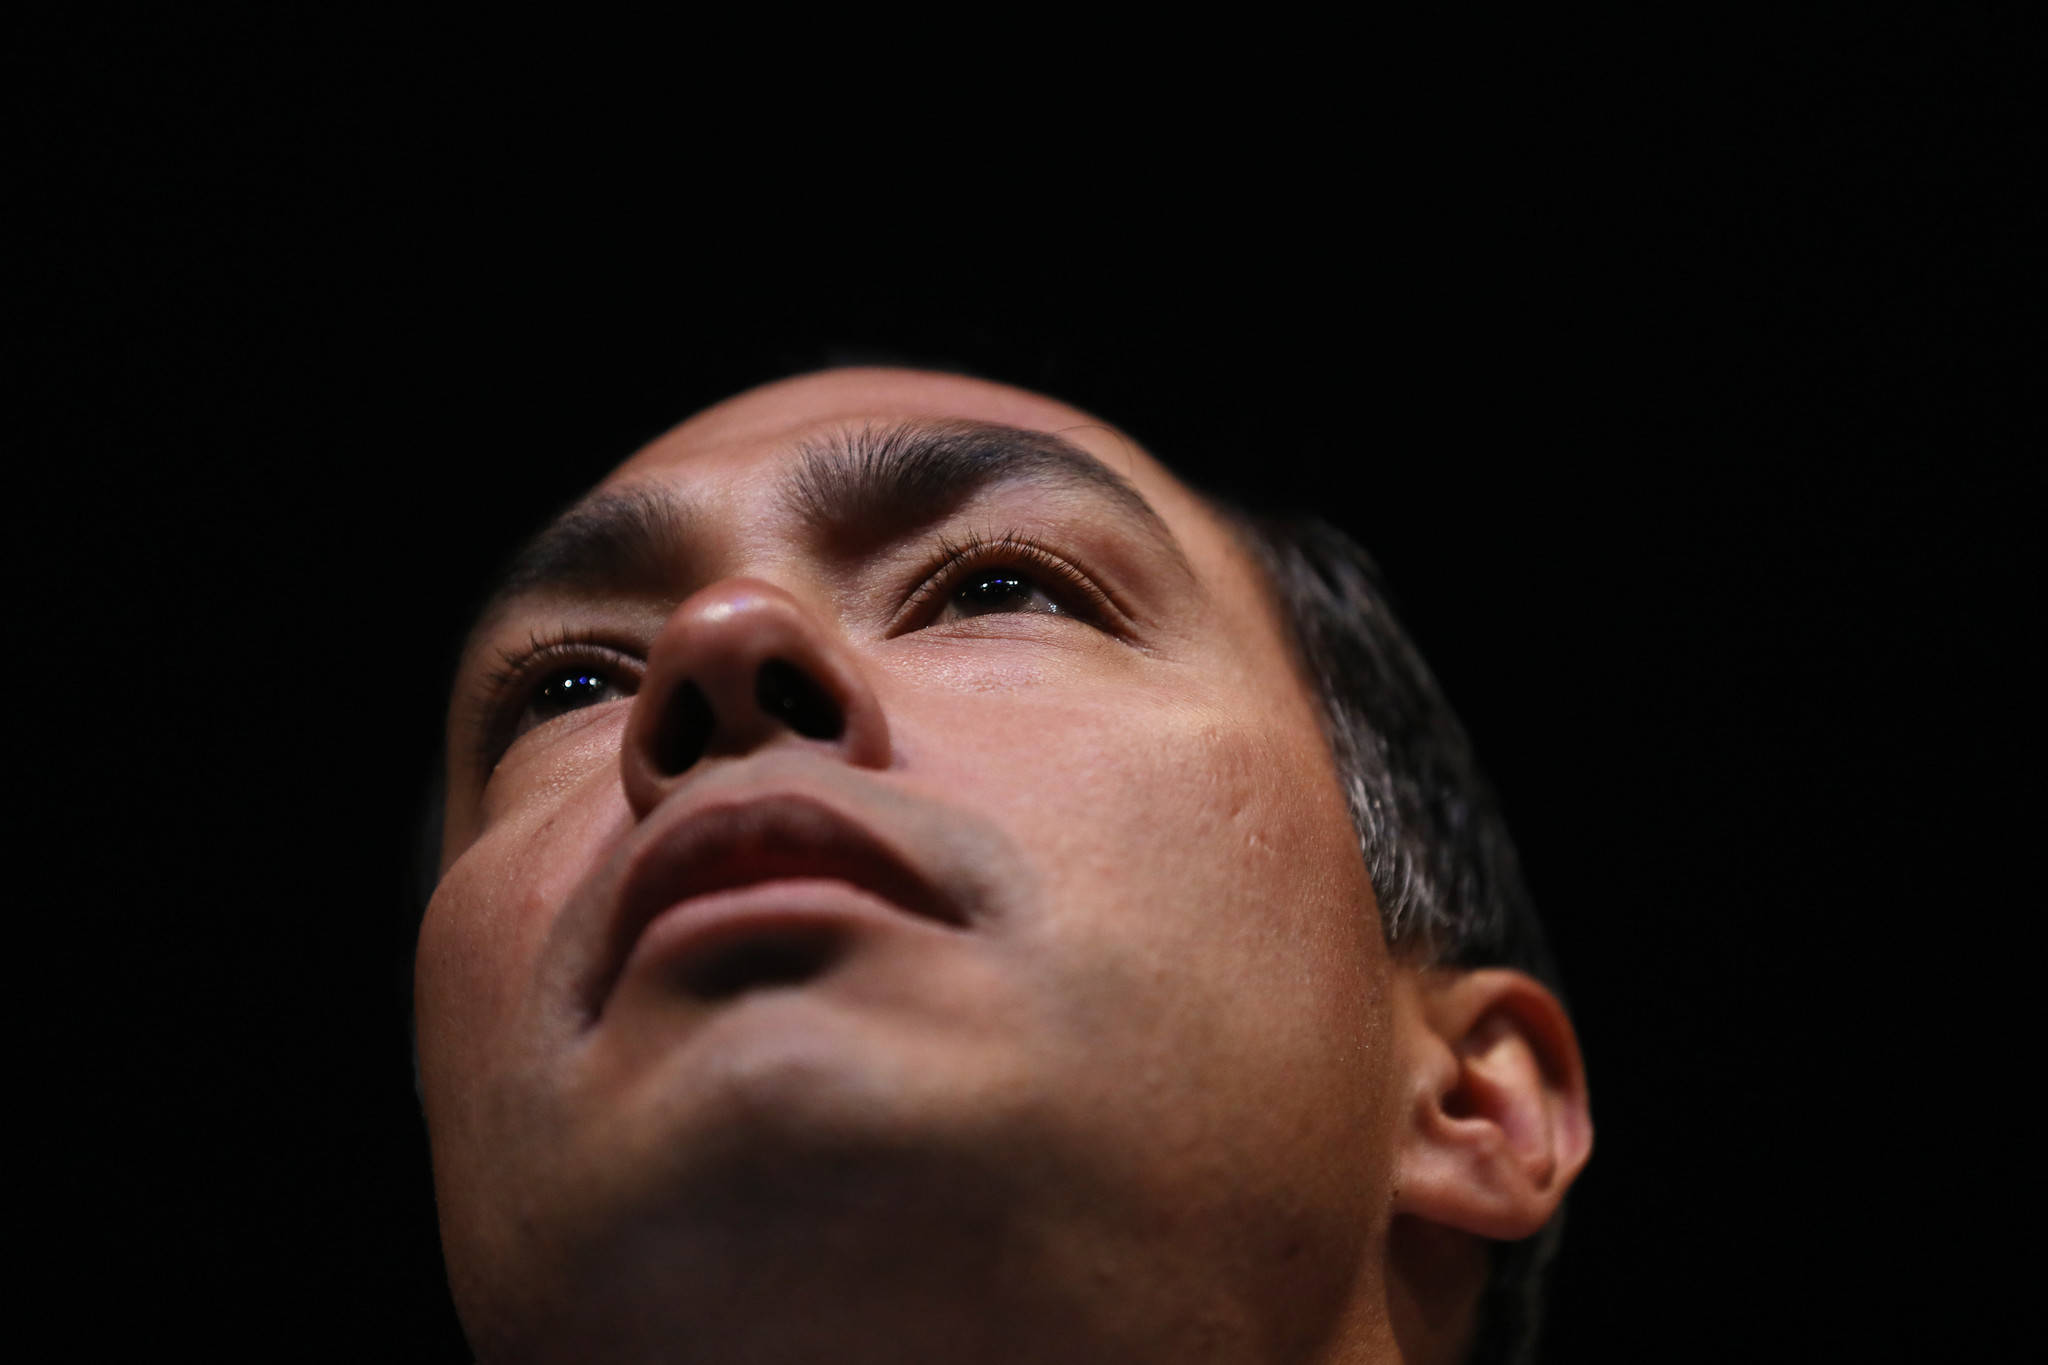 2020 Democratic presidential candidate Julian Castro speaks during the Iowa Democratic Wing Ding fundraising dinner on Aug. 9, 2019, in Clear Lake, Iowa. (John J. Kim / Chicago Tribune)